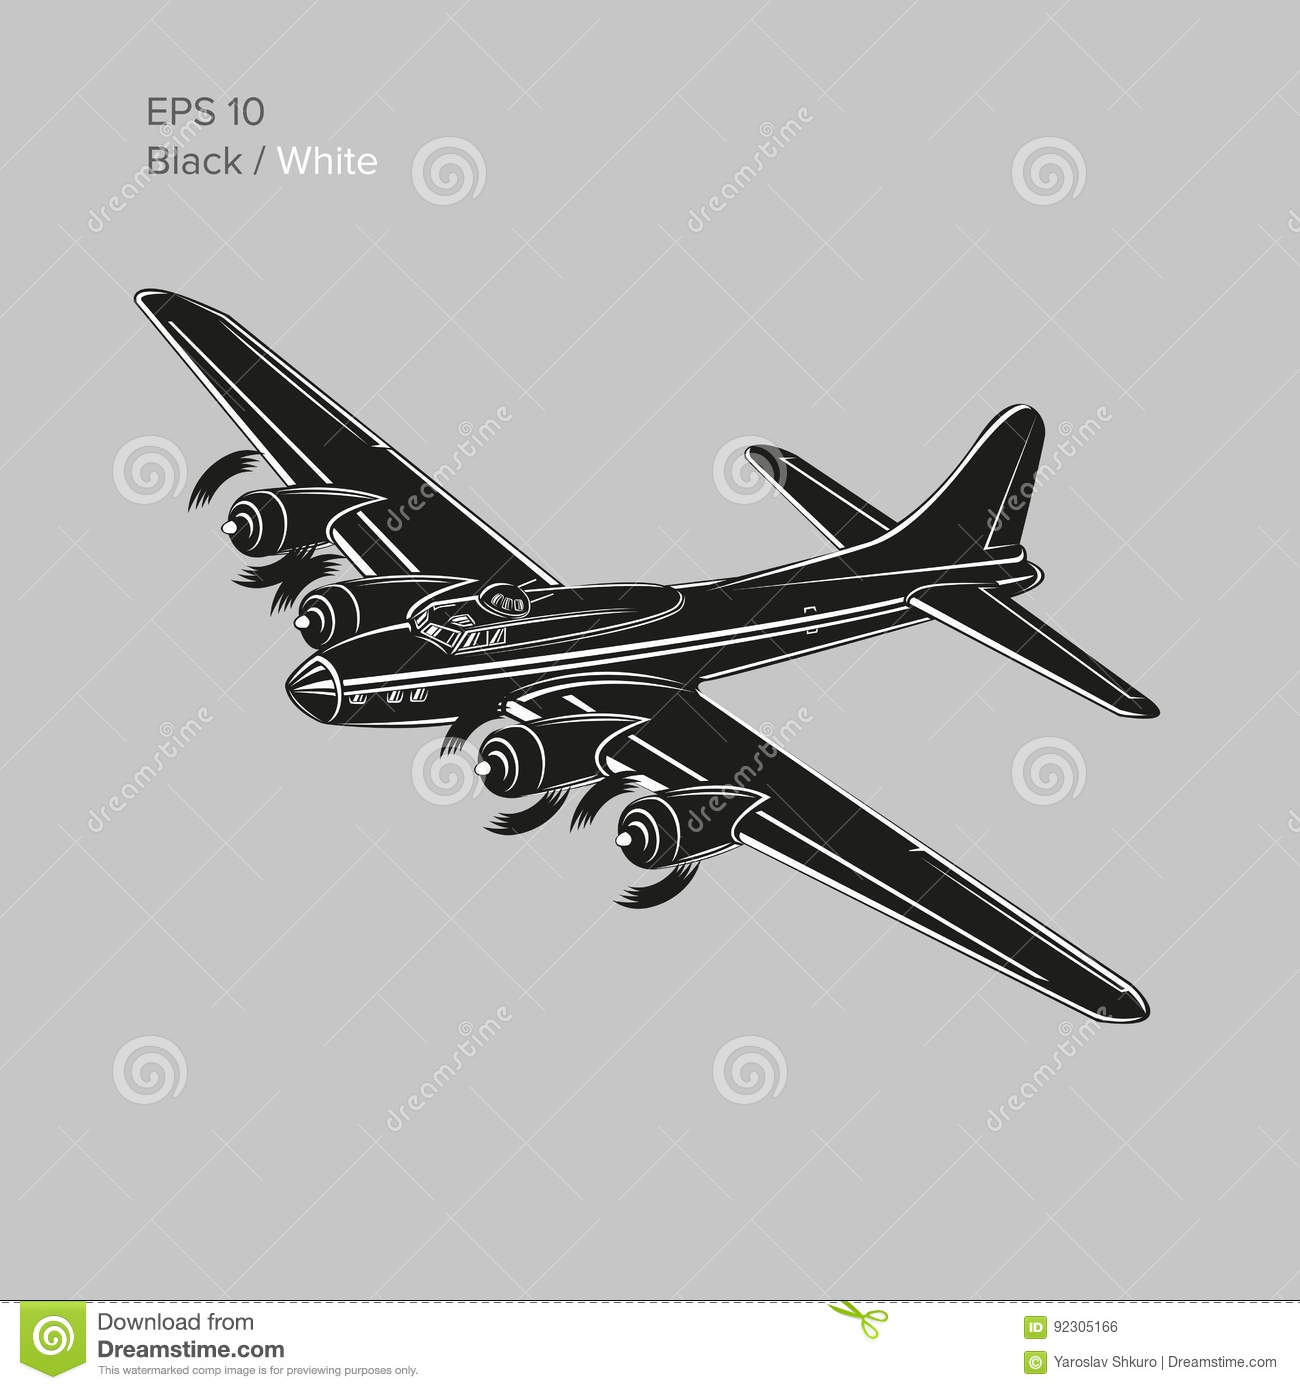 Airplane Aircraft Posters And Diagramspiston Engines In